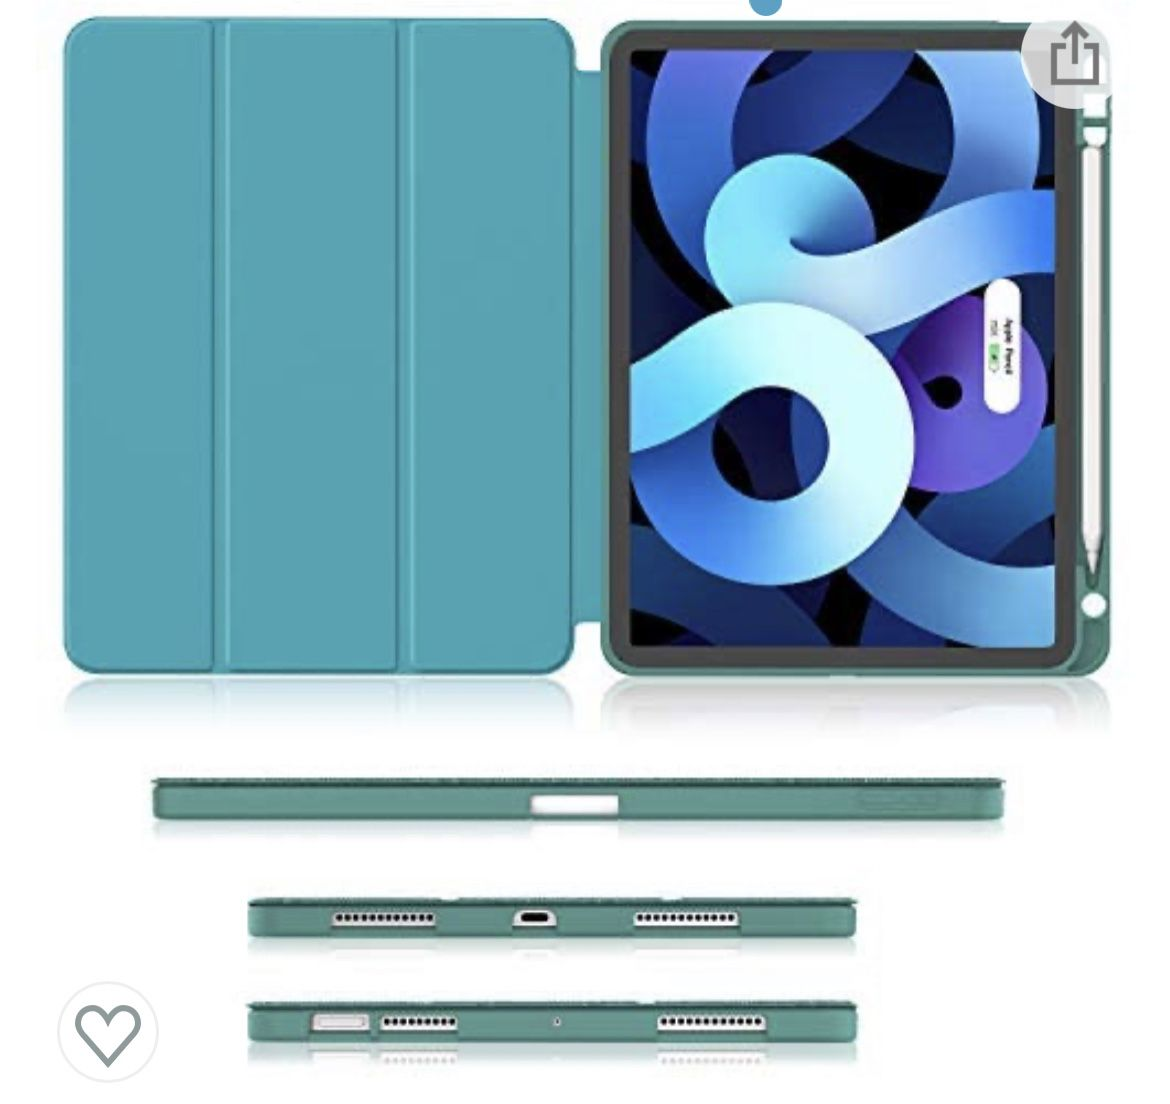 iPad Air 4 Case 10.9 Inch 2020 with Pencil Holder